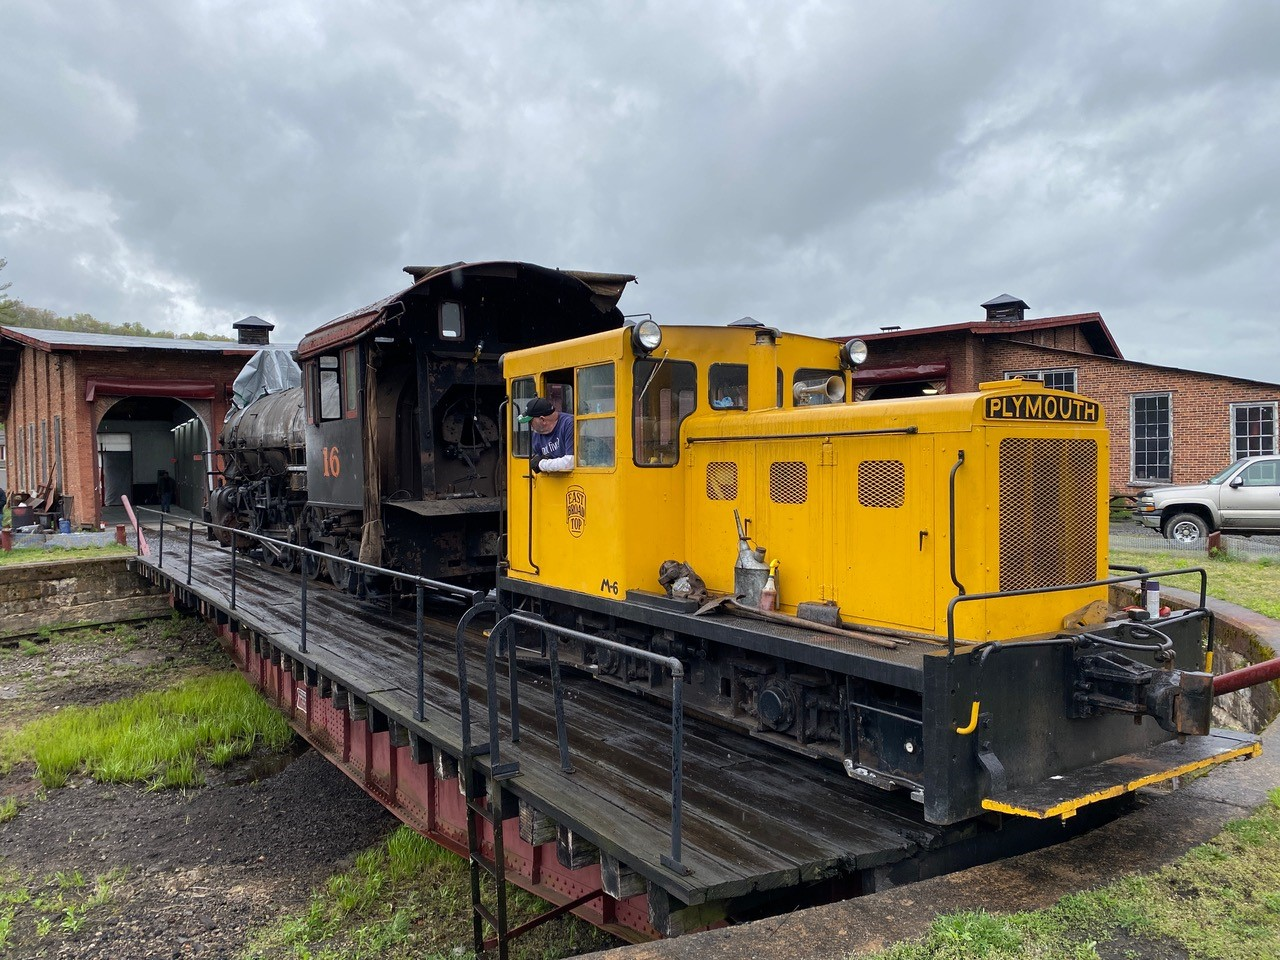 A yellow Plymouth diesel locomotive pauses on a turntable waiting to shove an East Broad Top steam locomotive into a shop.